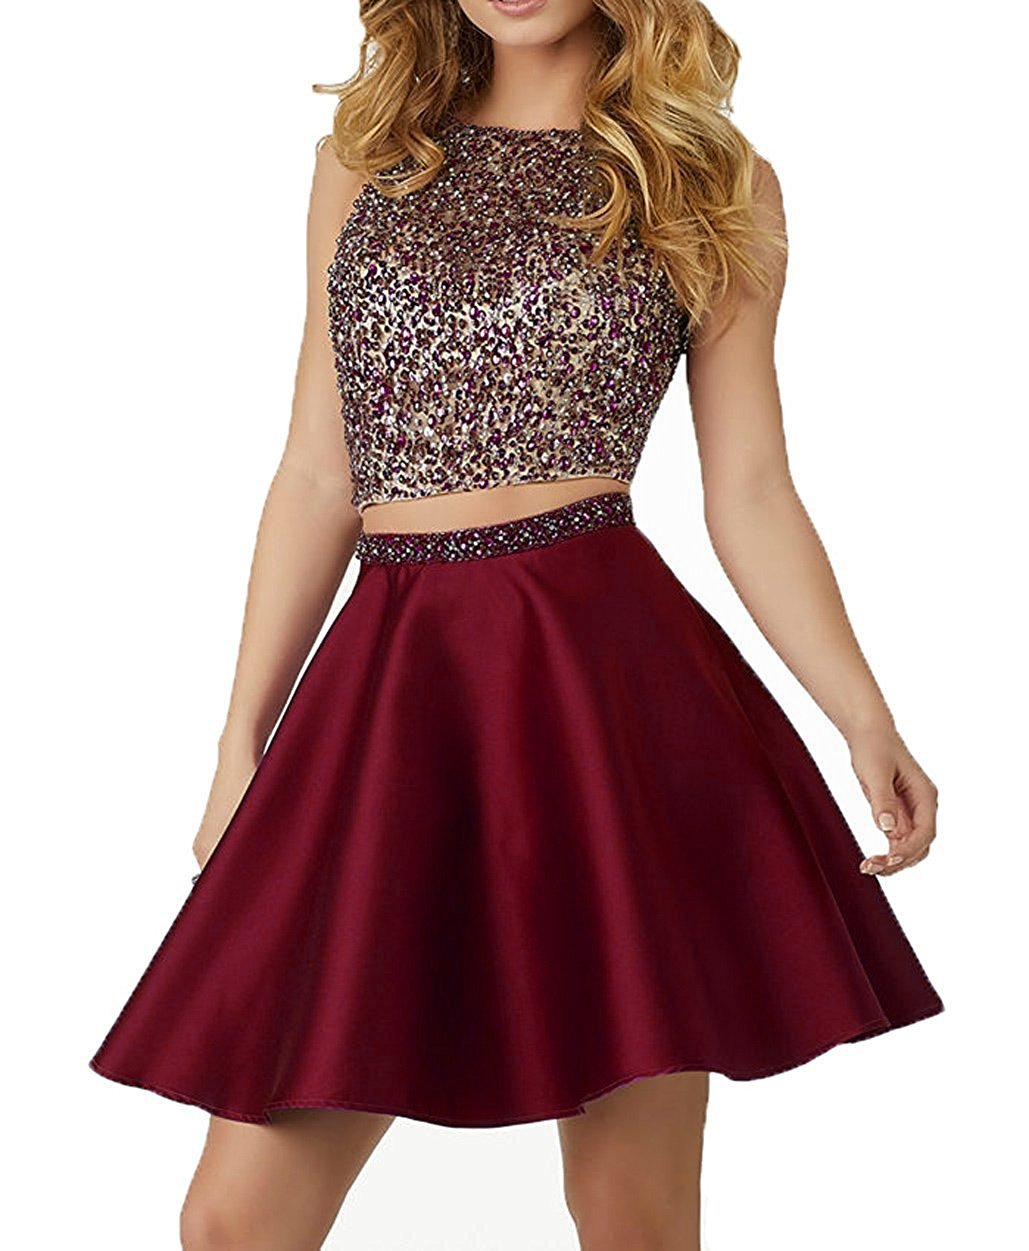 532cdf1dfc7 LOVING HOUSE Sparkly Crstals 2 Piece Satin Prom Dresses Short Open Back Homecoming  Cocktail Dresses P012 Burgundy 10